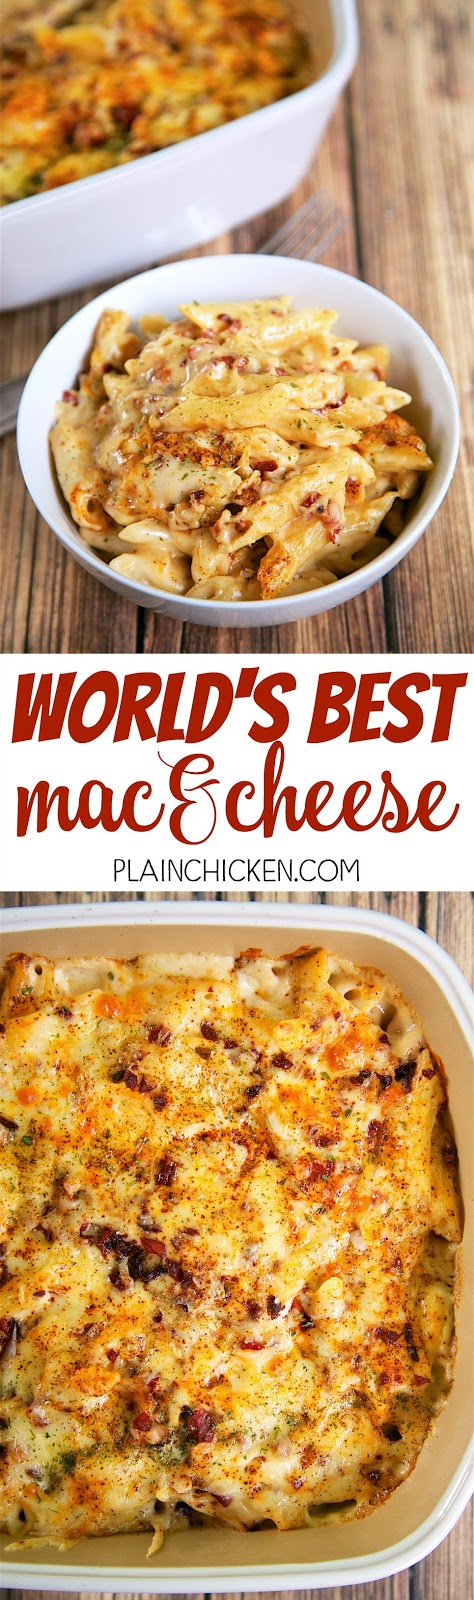 World's Best Mac and Cheese - so creamy, cheese and delicious! Just ...